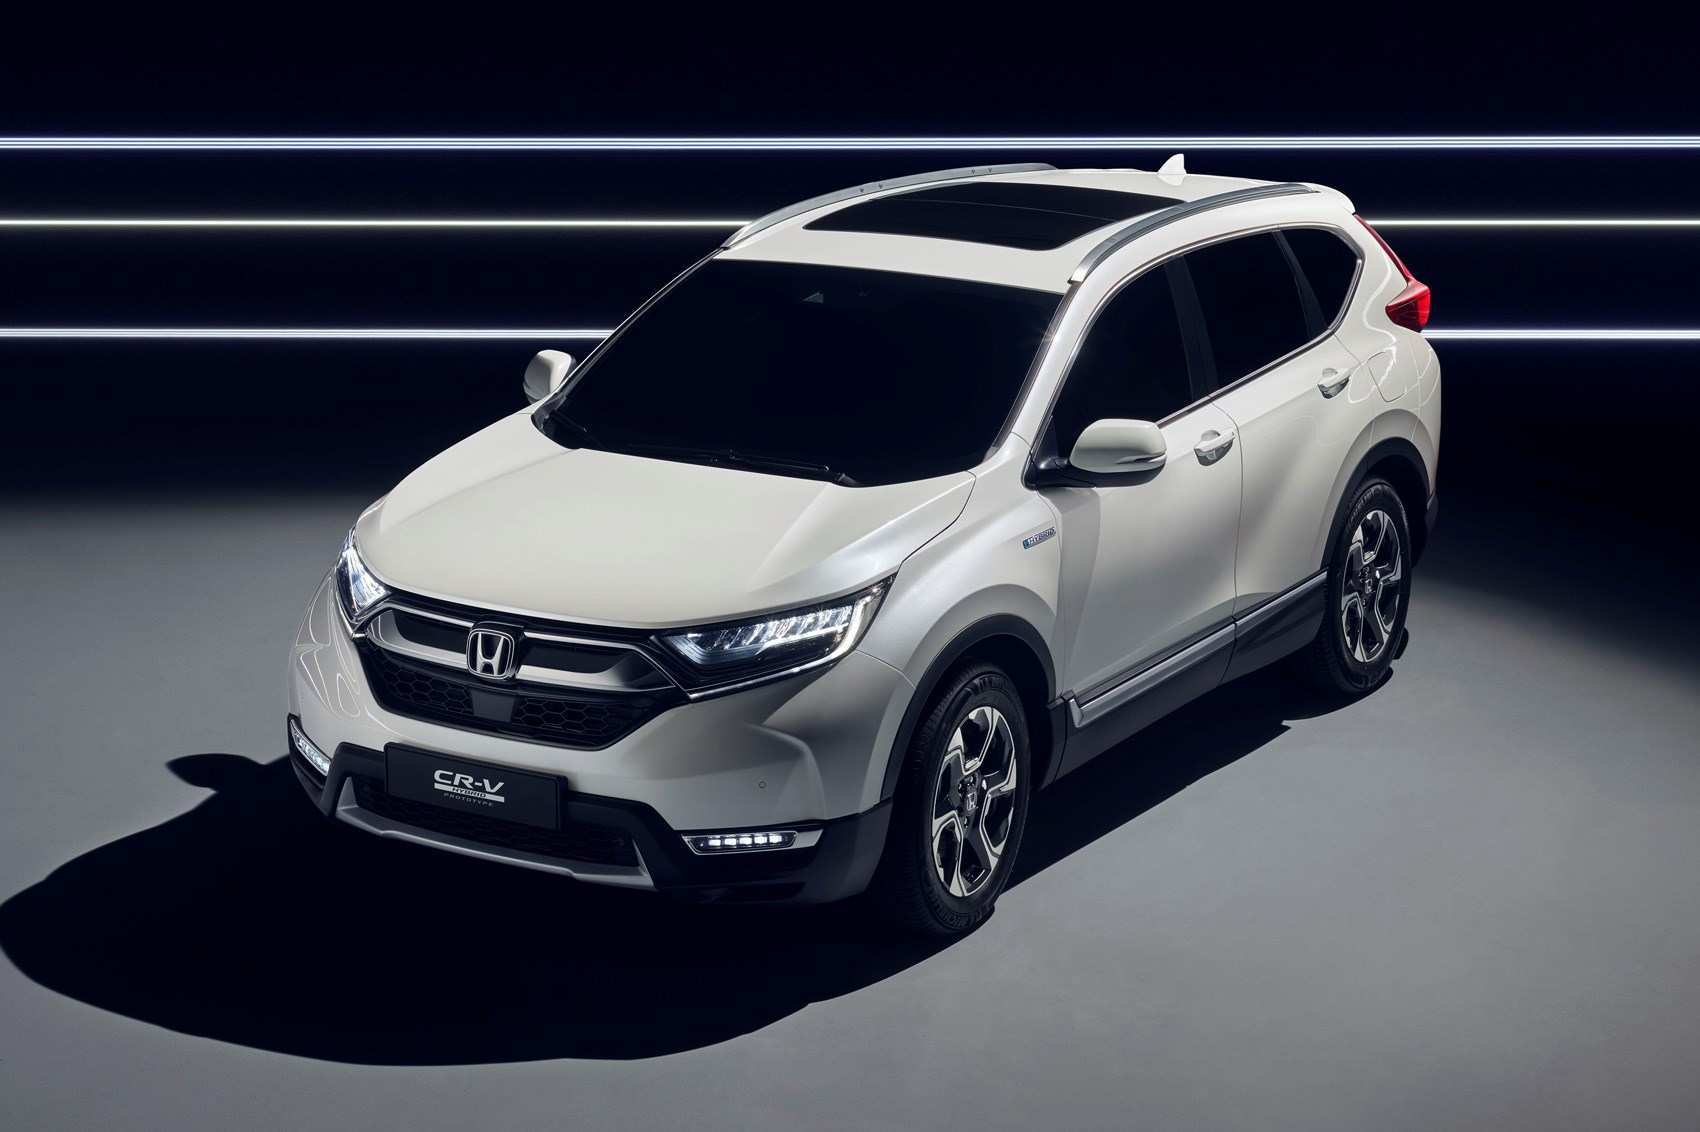 13 Best Honda Crv 2020 Release Date And Concept